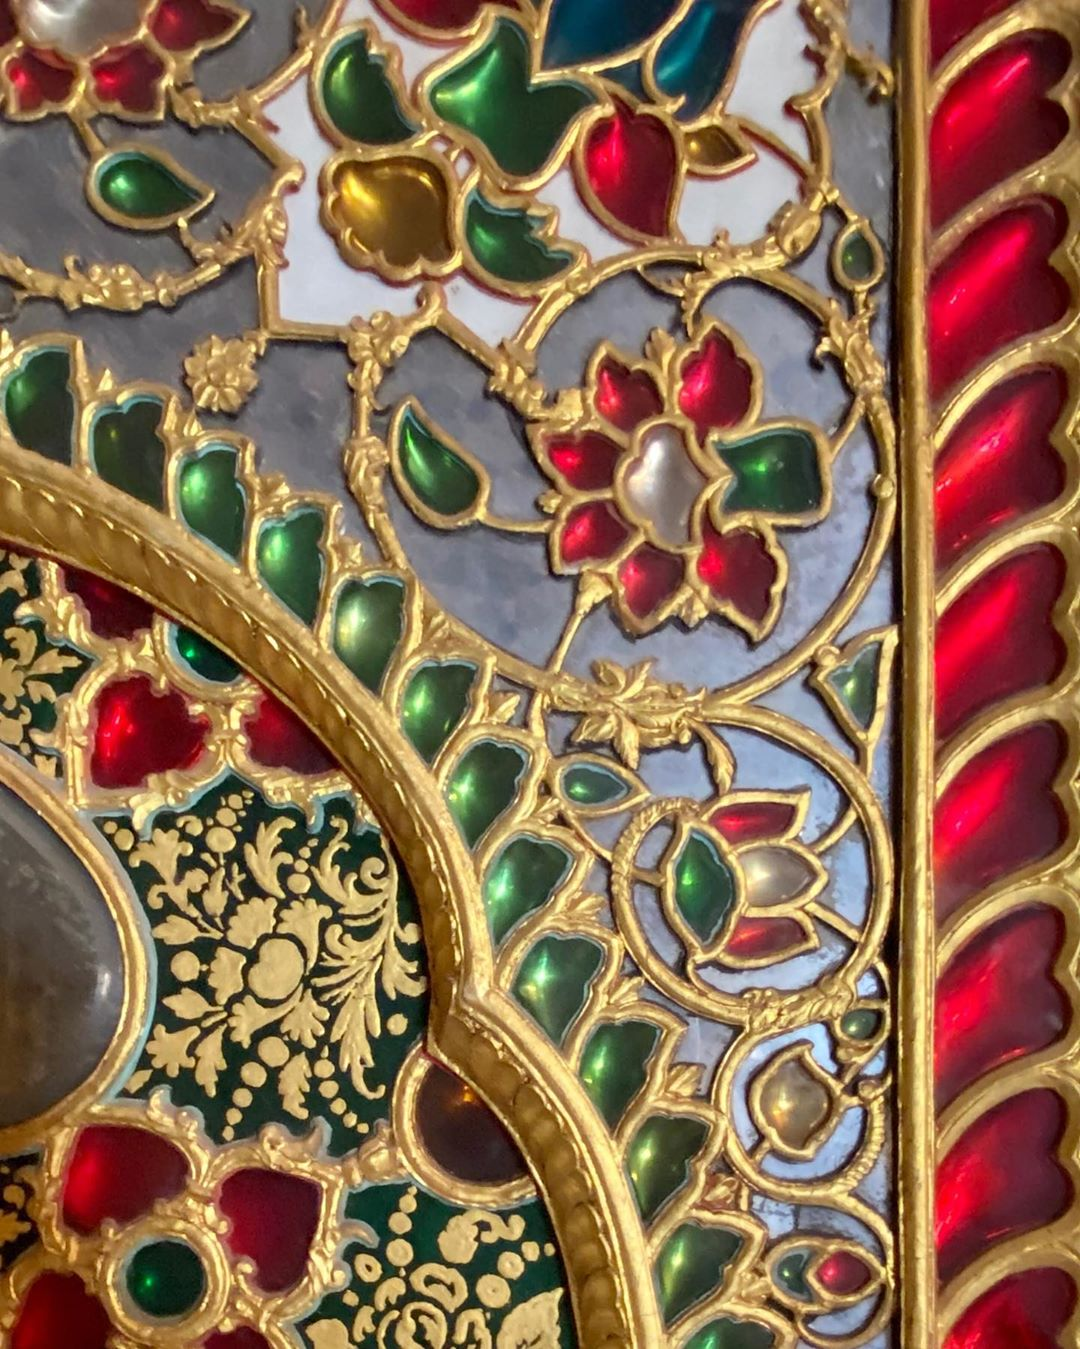 🇮🇳 #citypalacejaipur walls evoking kundan Did you know? #kundan is a traditional form of Indian gemstone jewelry involving a gem set with a gold foil between the stones